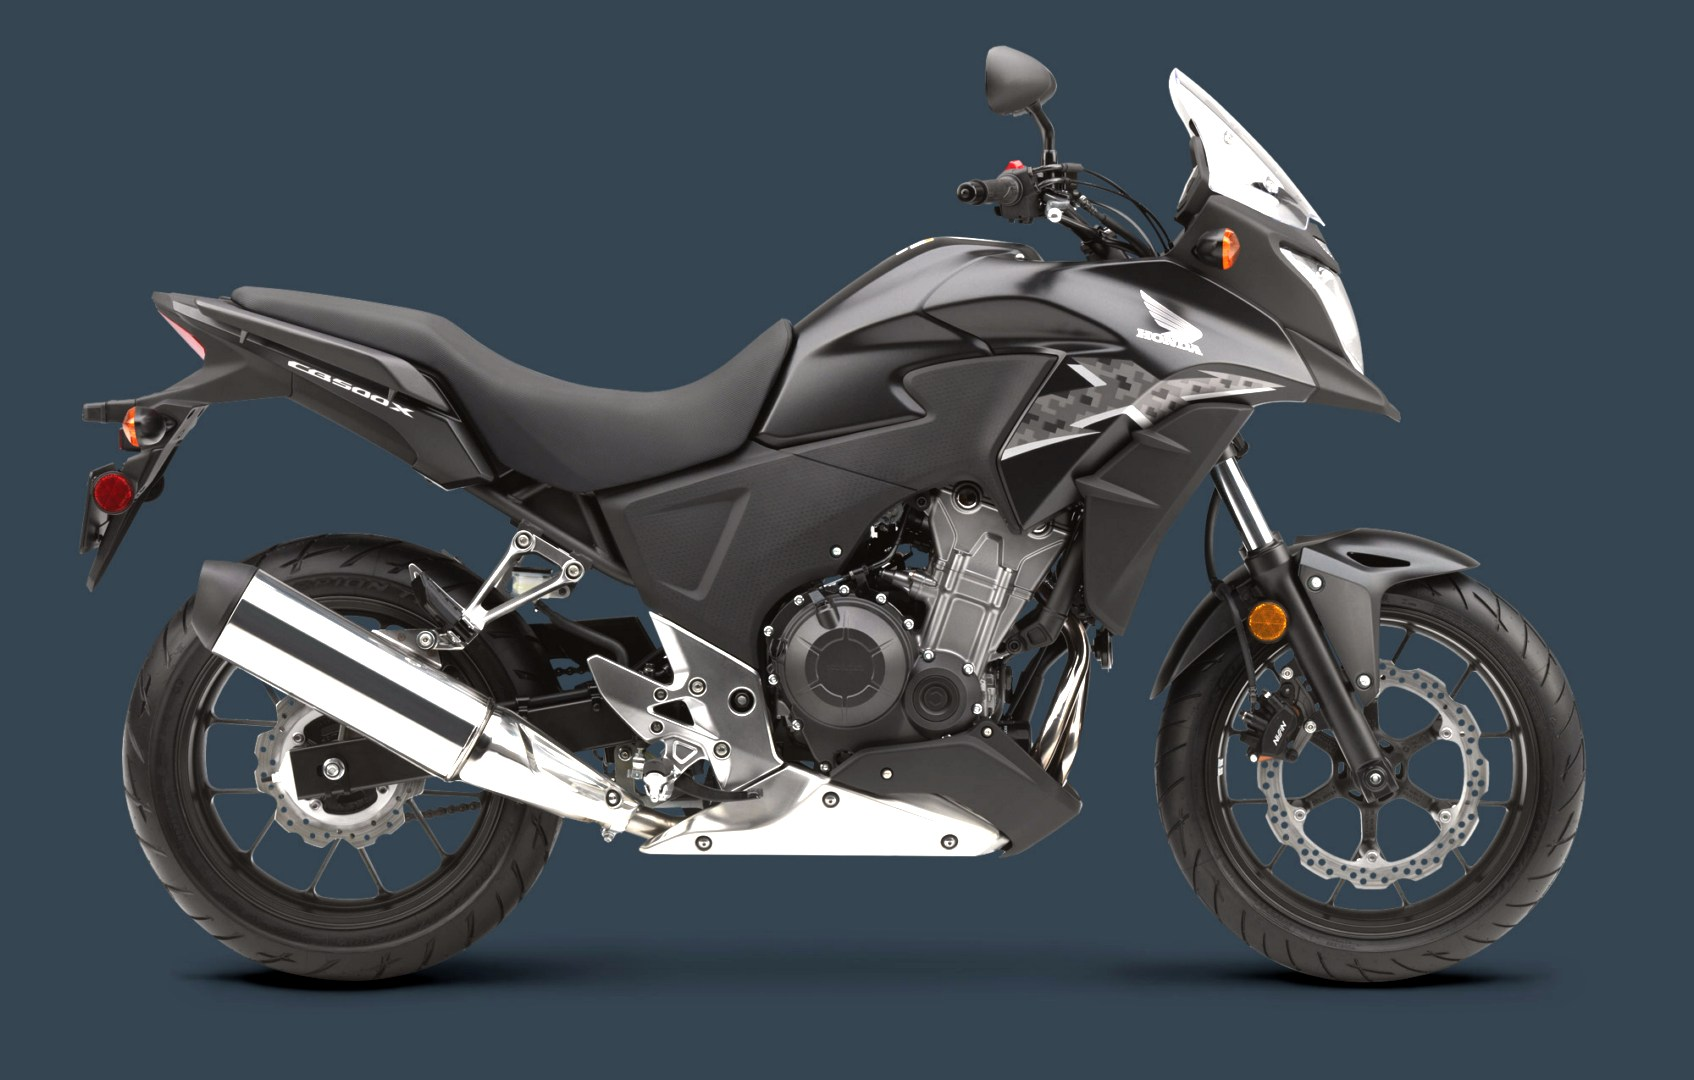 2013 honda cb500x the new middleweight versatile bike autoevolution. Black Bedroom Furniture Sets. Home Design Ideas